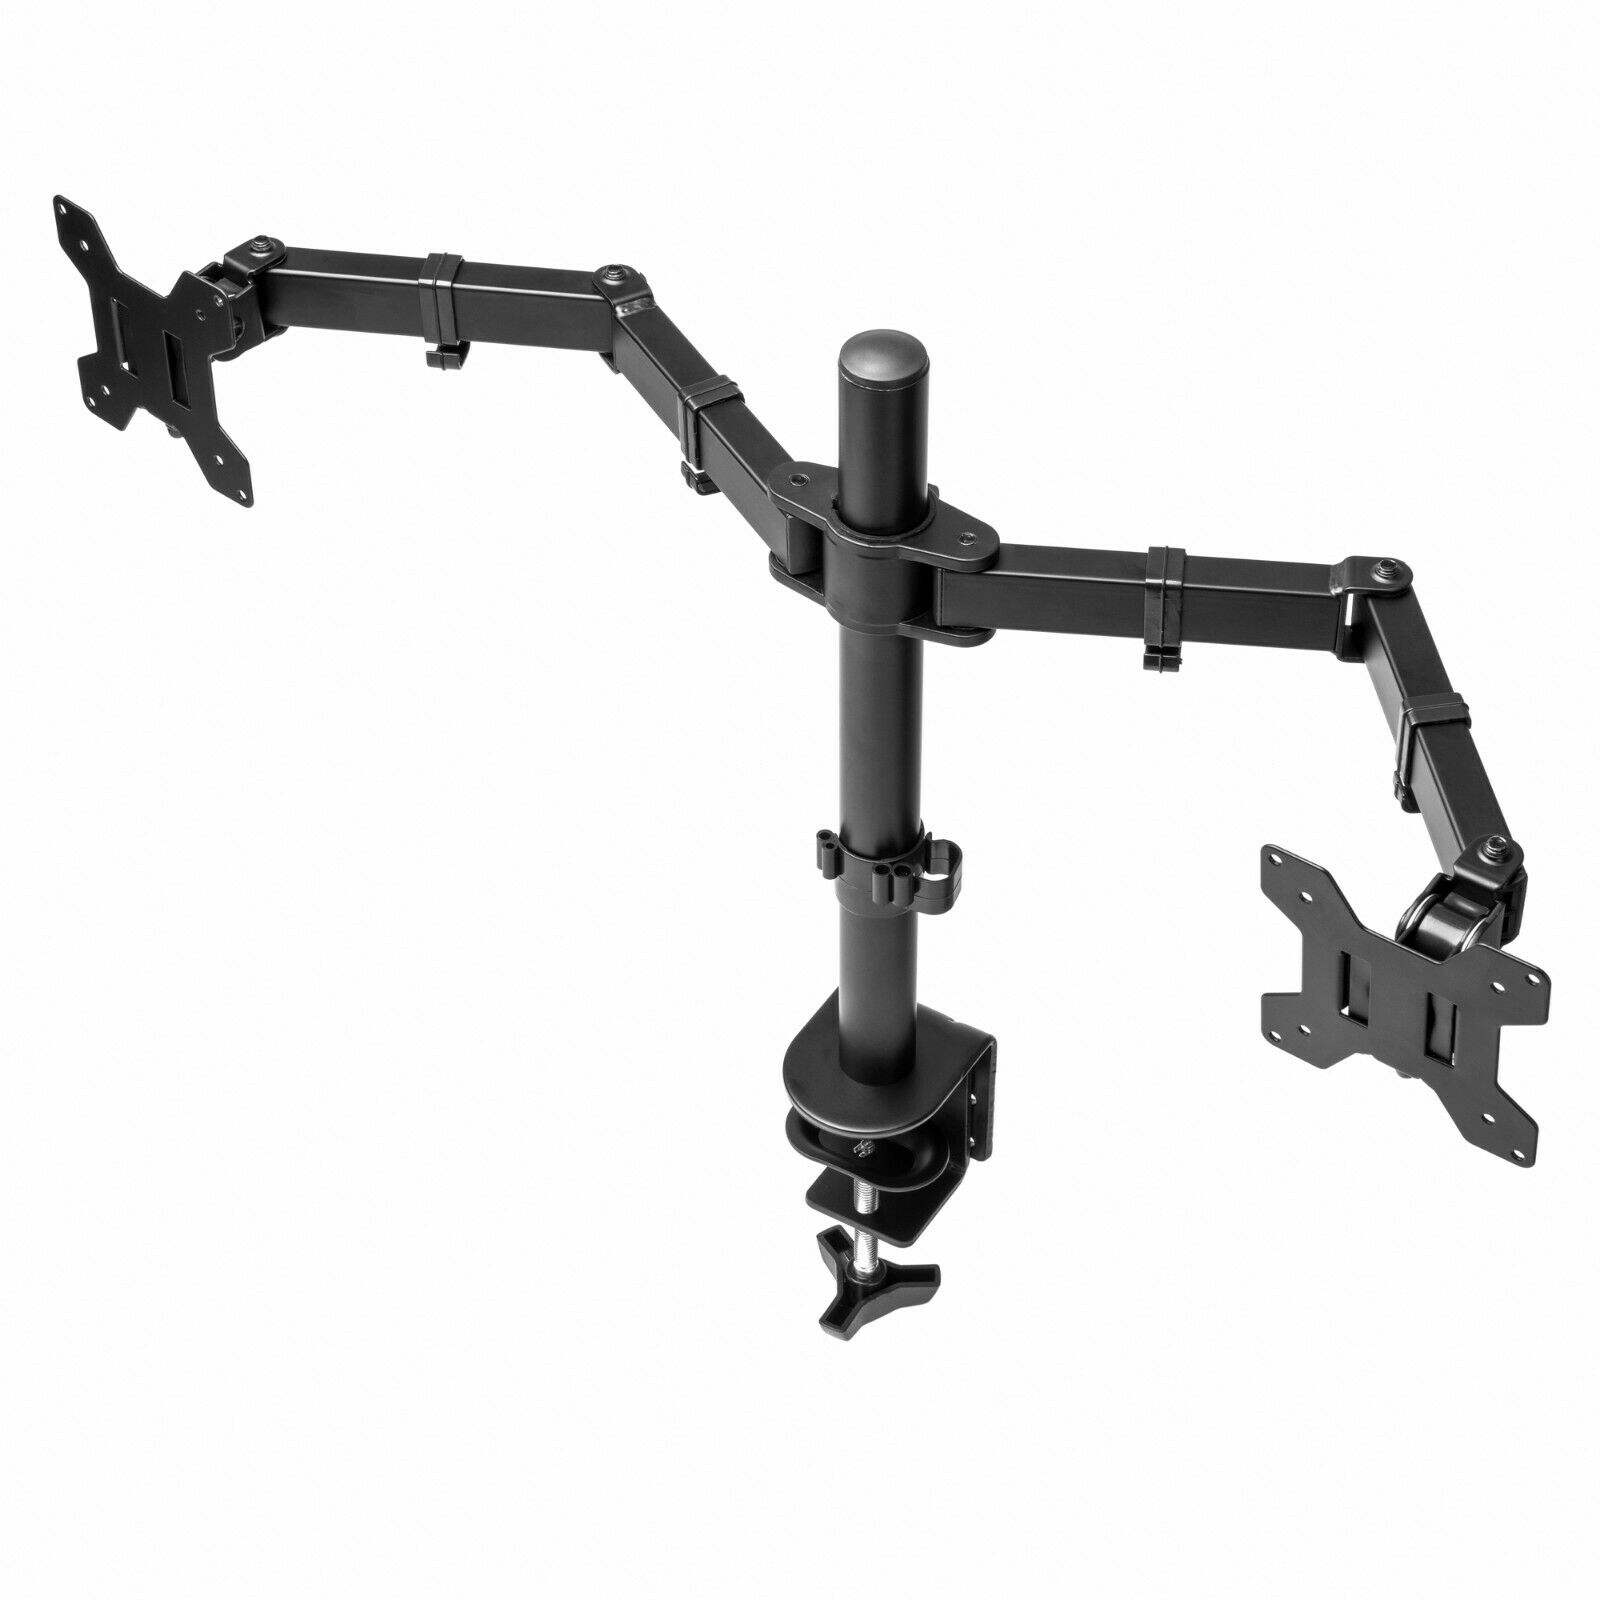 "Dual Desk Monitor Mount StandとClamp Double Monitor ArmためComputer 13 ""-27"" Screen"